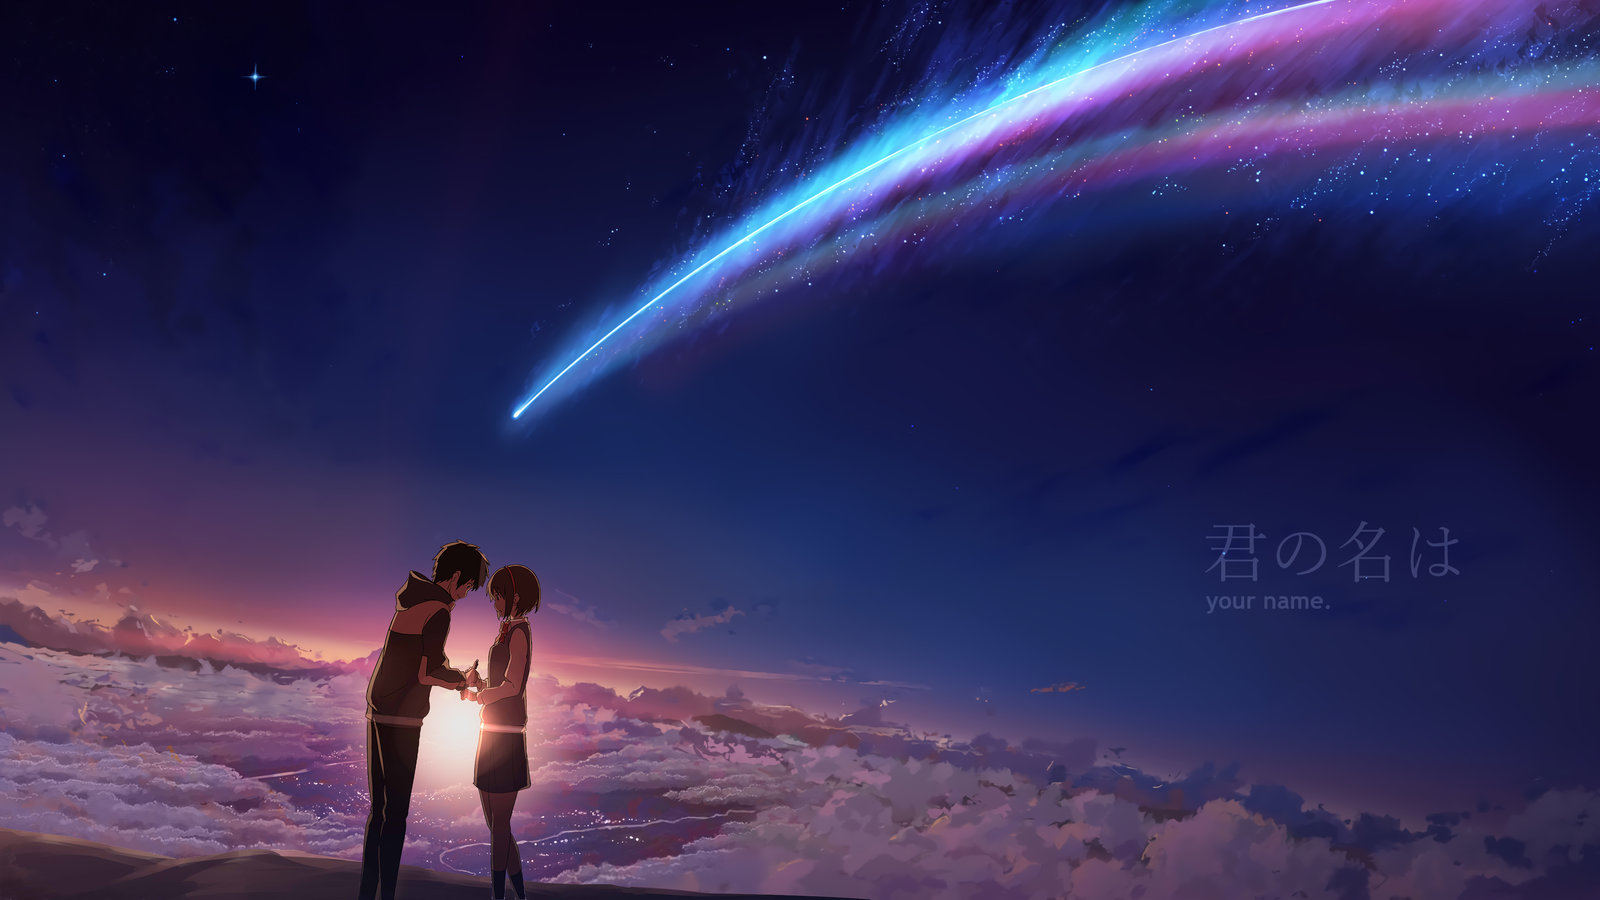 Kimi no Na wa / Your Name Anime Paling Bikin Baper